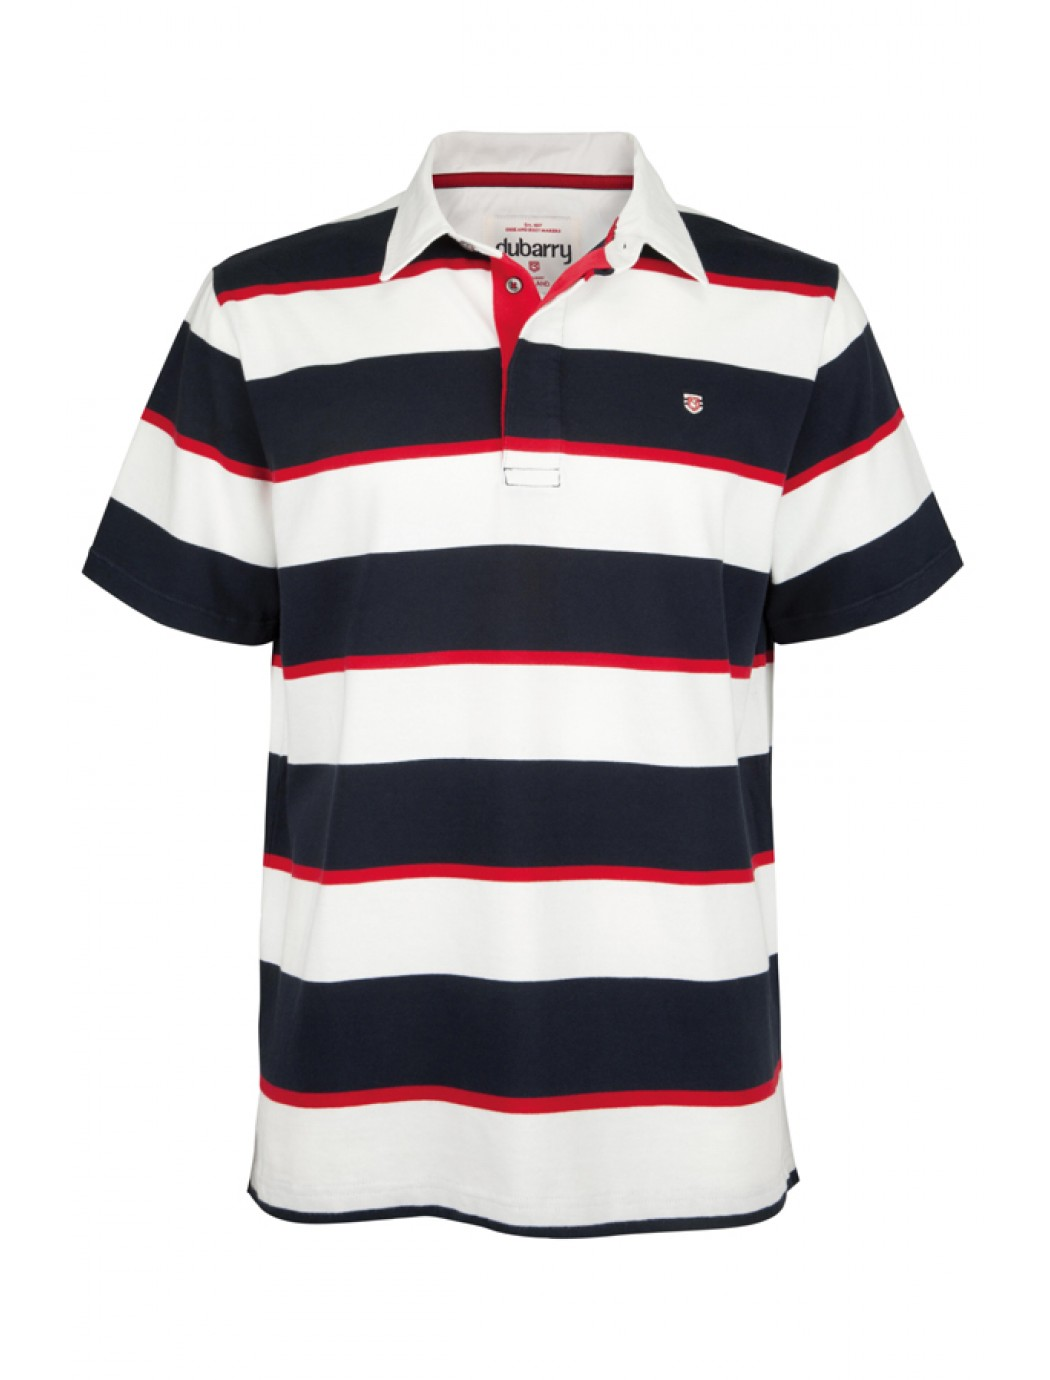 newbridgel-mens-rugby-navy-red-sailwhite-1 4